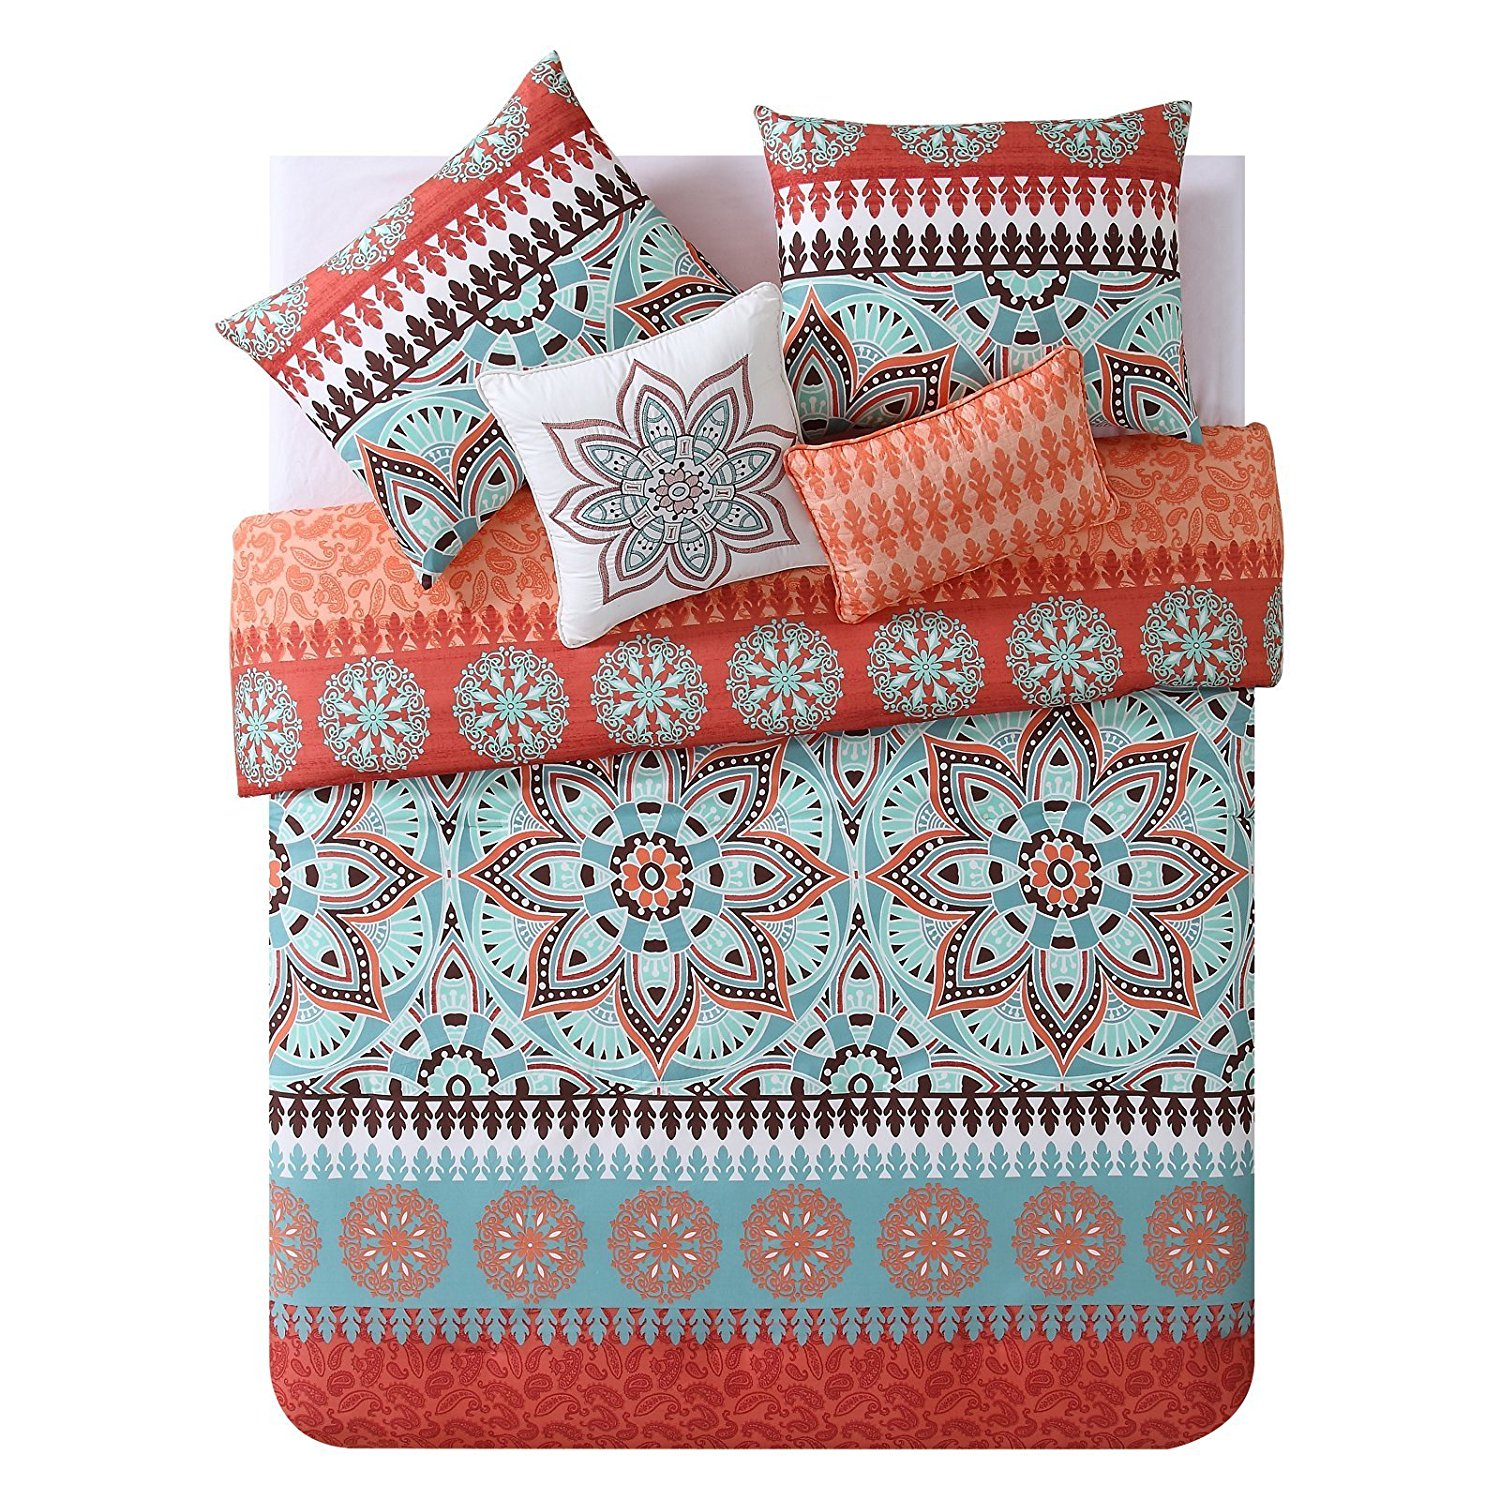 4 Piece Multi Color Geometric Medallion Comforter Twin Twin Xl, Aqua Orange Brown Floral Paisley Motif Teen Themed Kids Bedding For Bedroom Reversible Light Orange Geometric Colorful, Microfiber